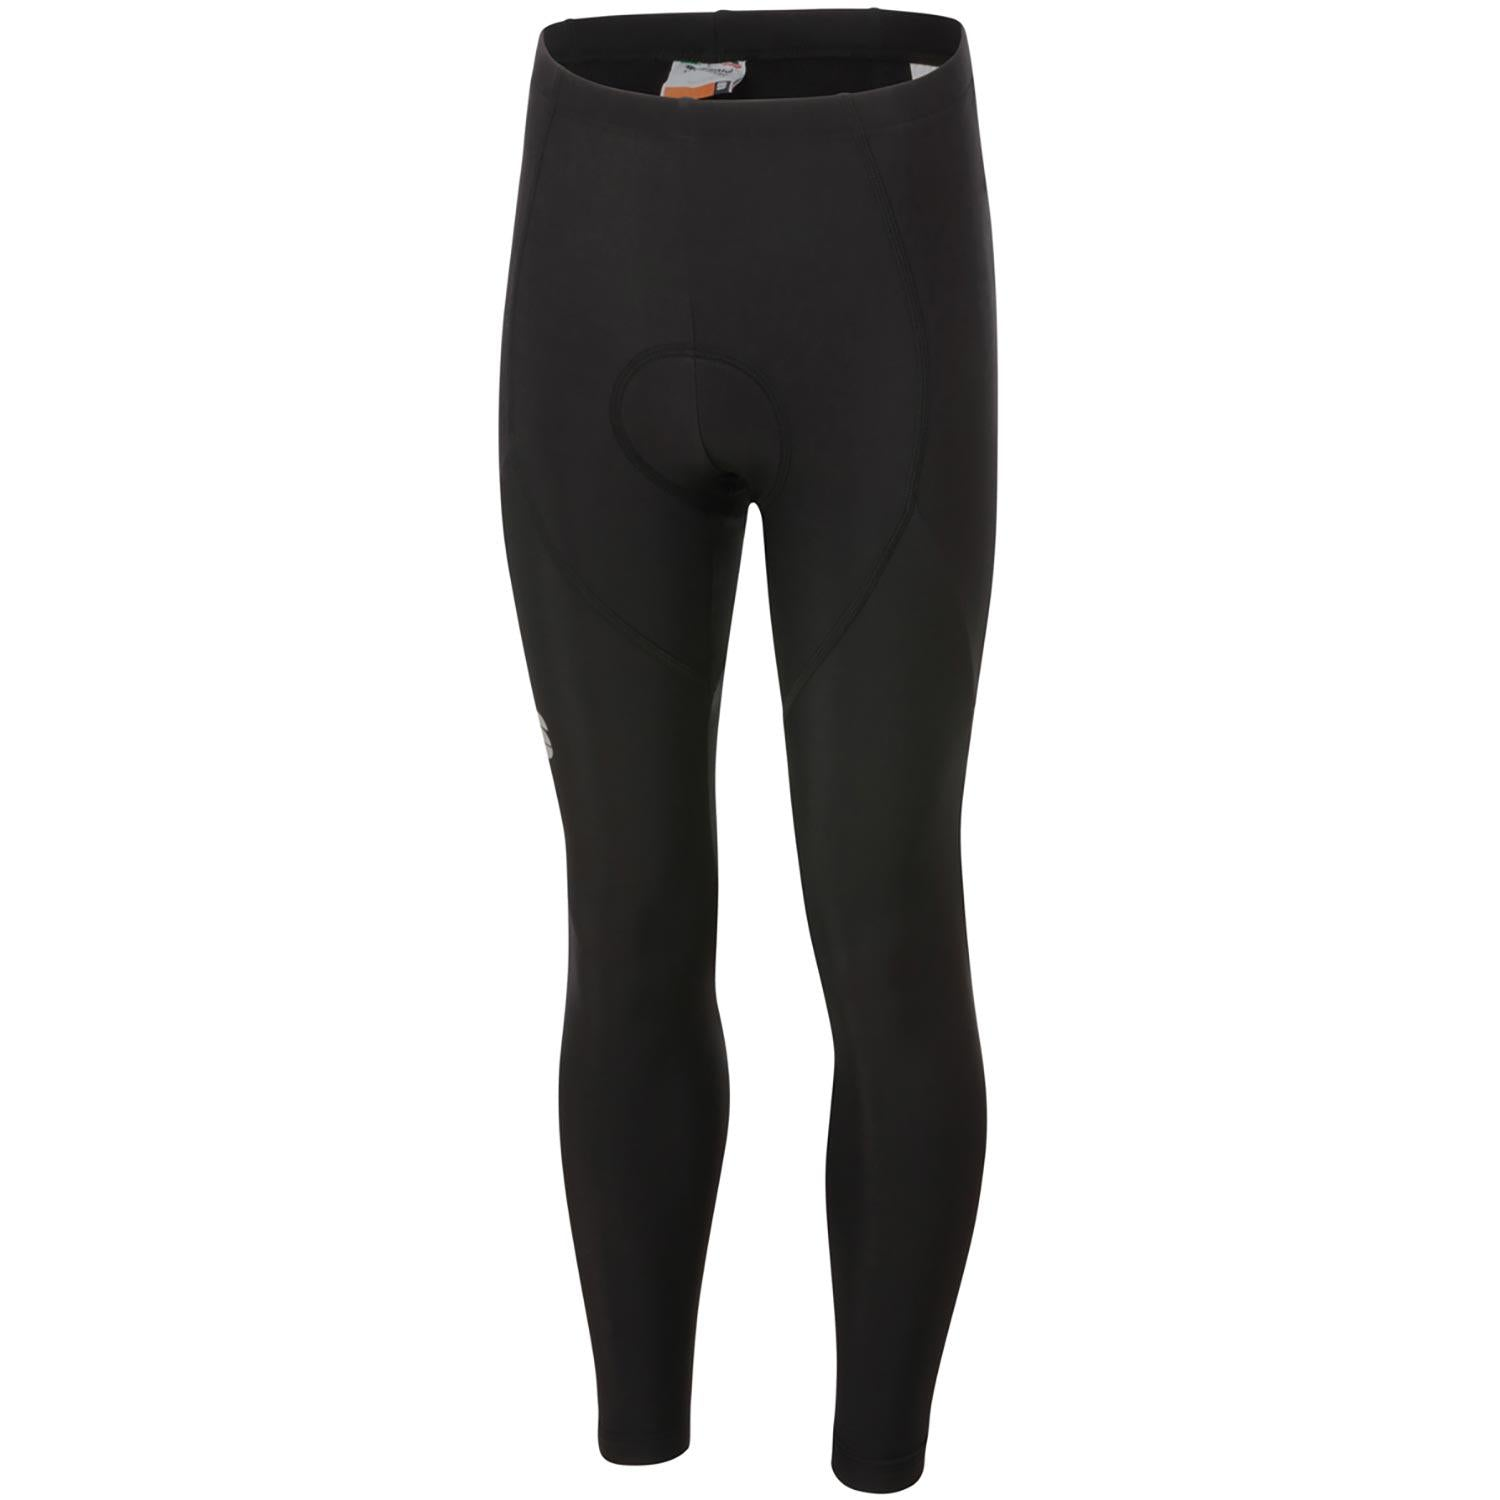 Sportful-Sportful Kid's Giro Tights-Black-10Y-SF2053400210Y-saddleback-elite-performance-cycling